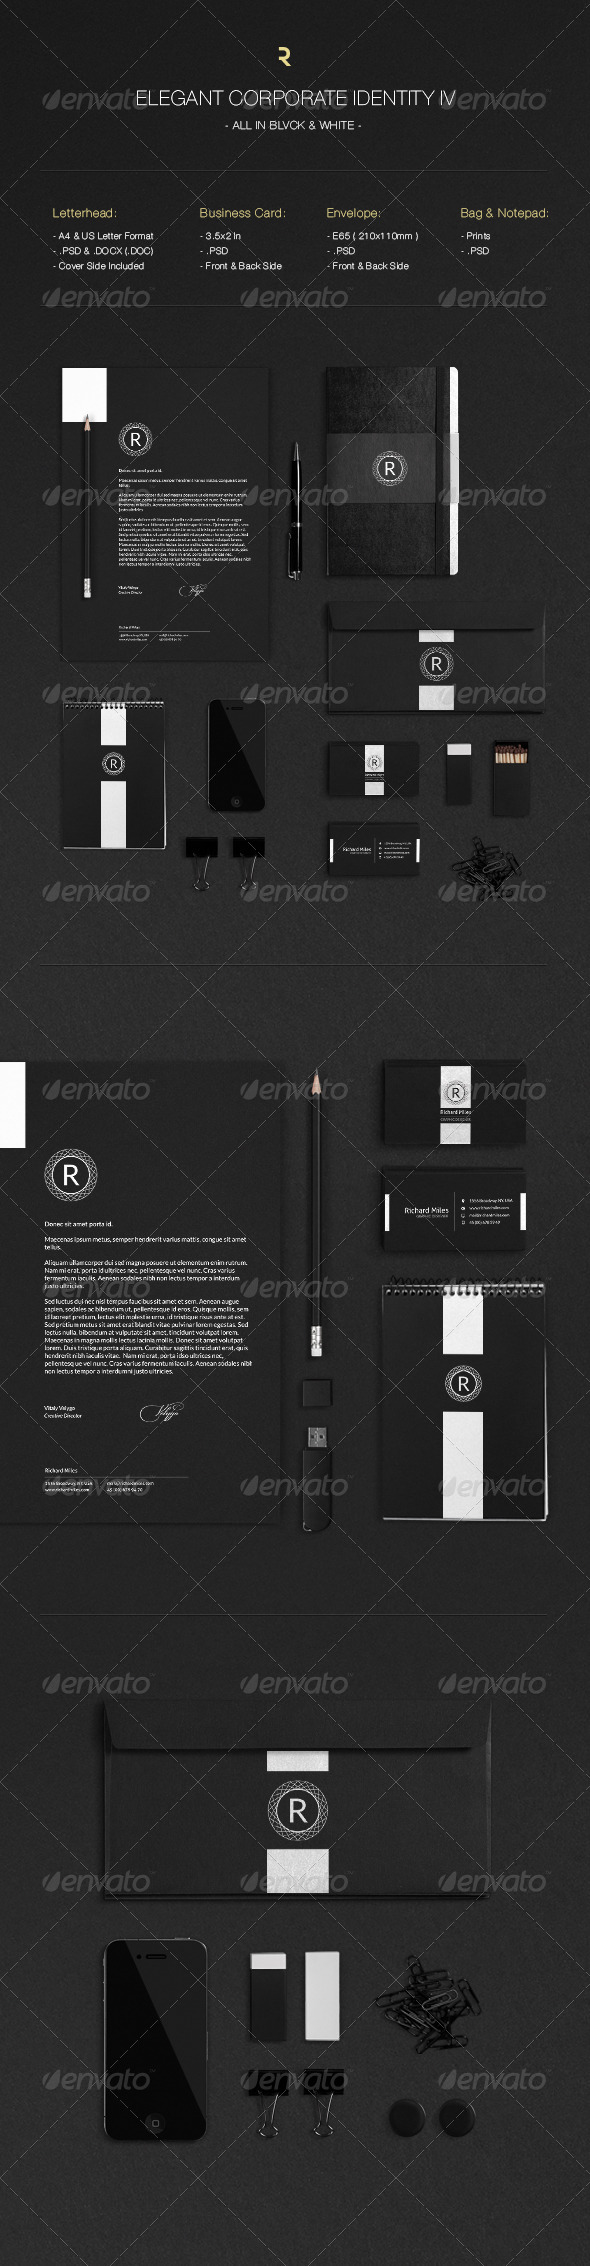 GraphicRiver Elegant Corporate Identity IV 8545377